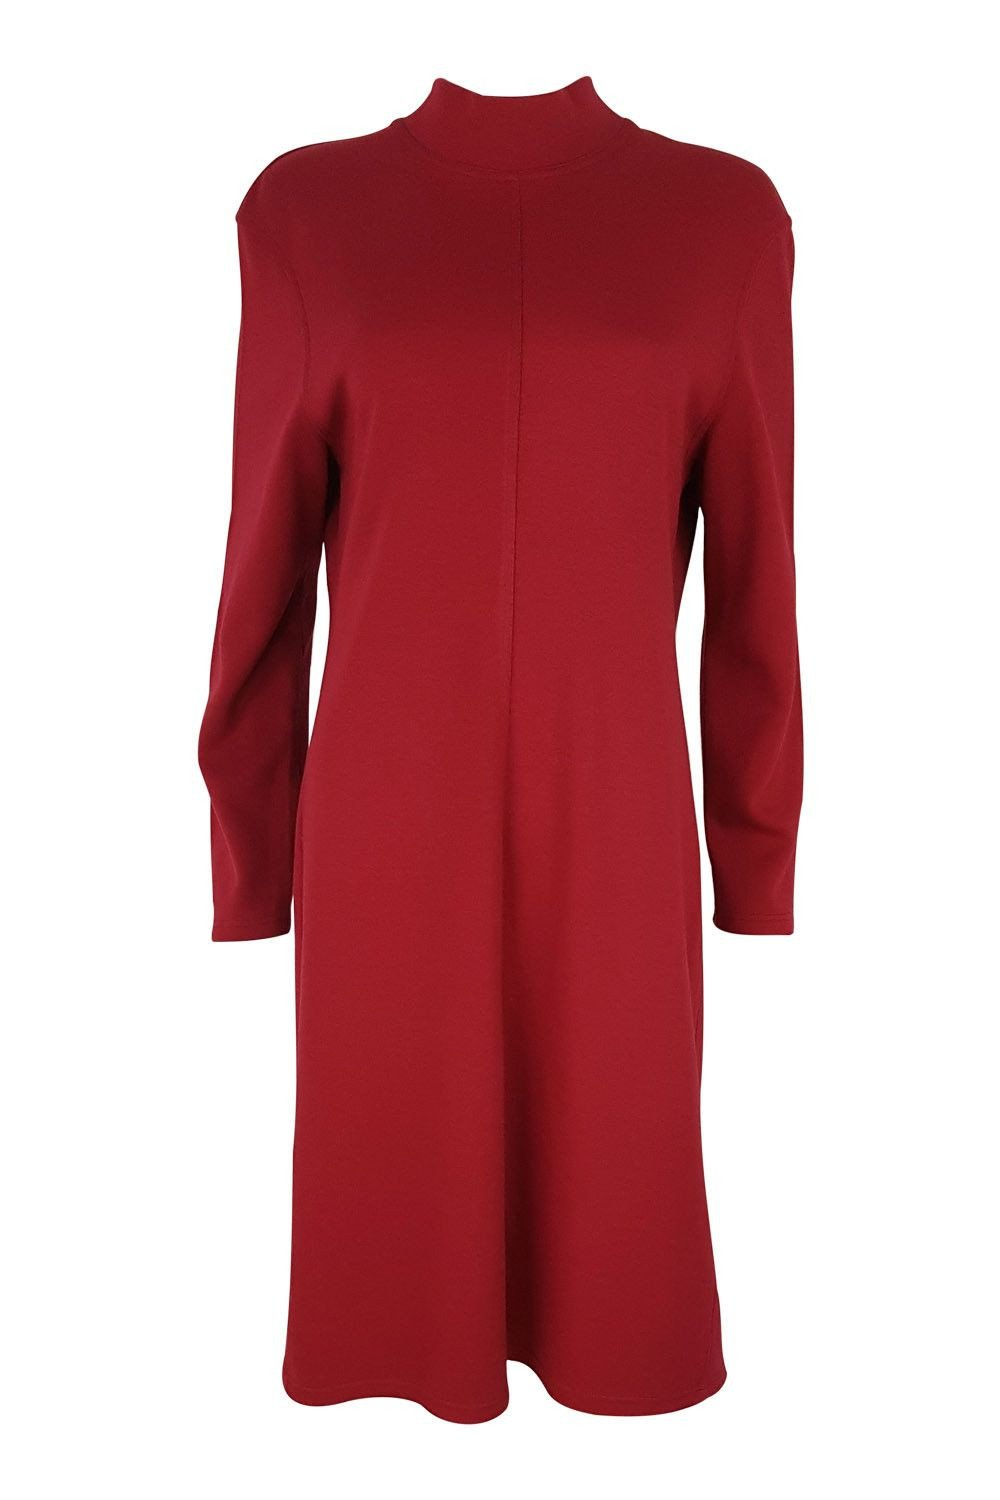 YVES SAINT LAURENT Vintage Polo Neck Dress-Yves Saint Laurent-The Freperie